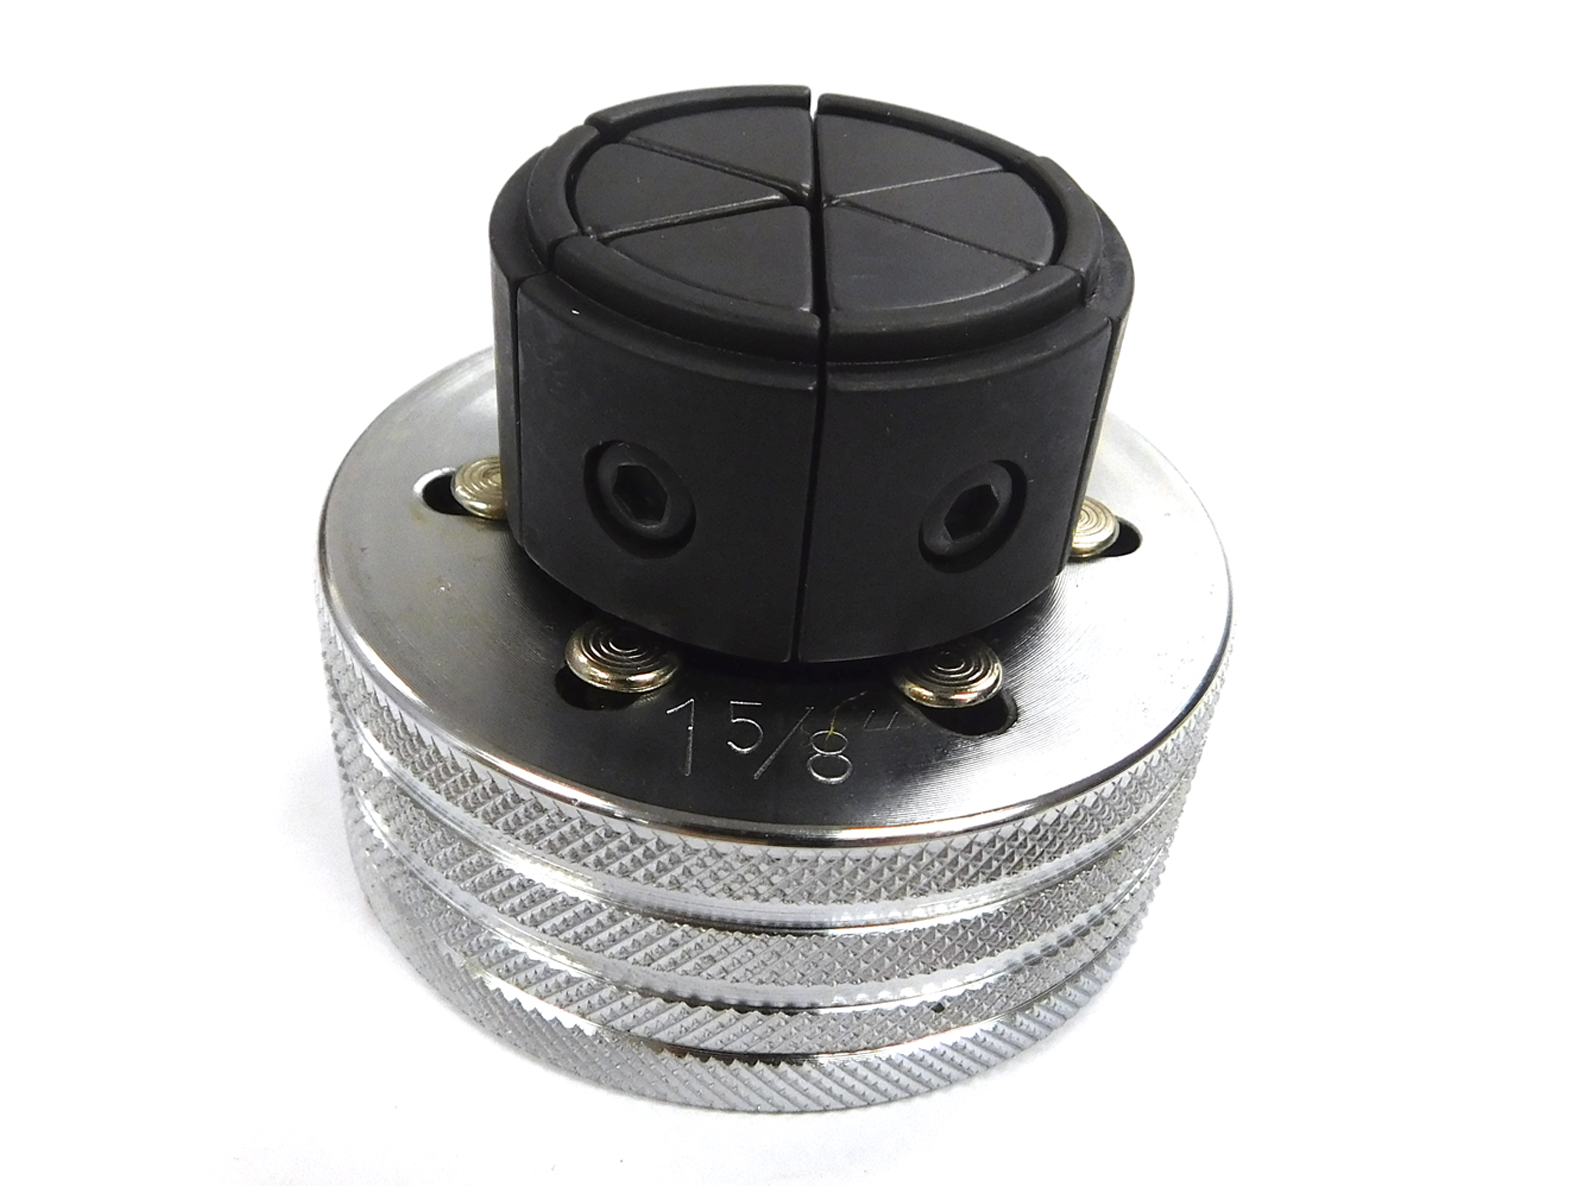 Pro-Set TLH26 Replacement Expander Head for TLE6 Tube Expander and Swaging Set 1-5/8 in